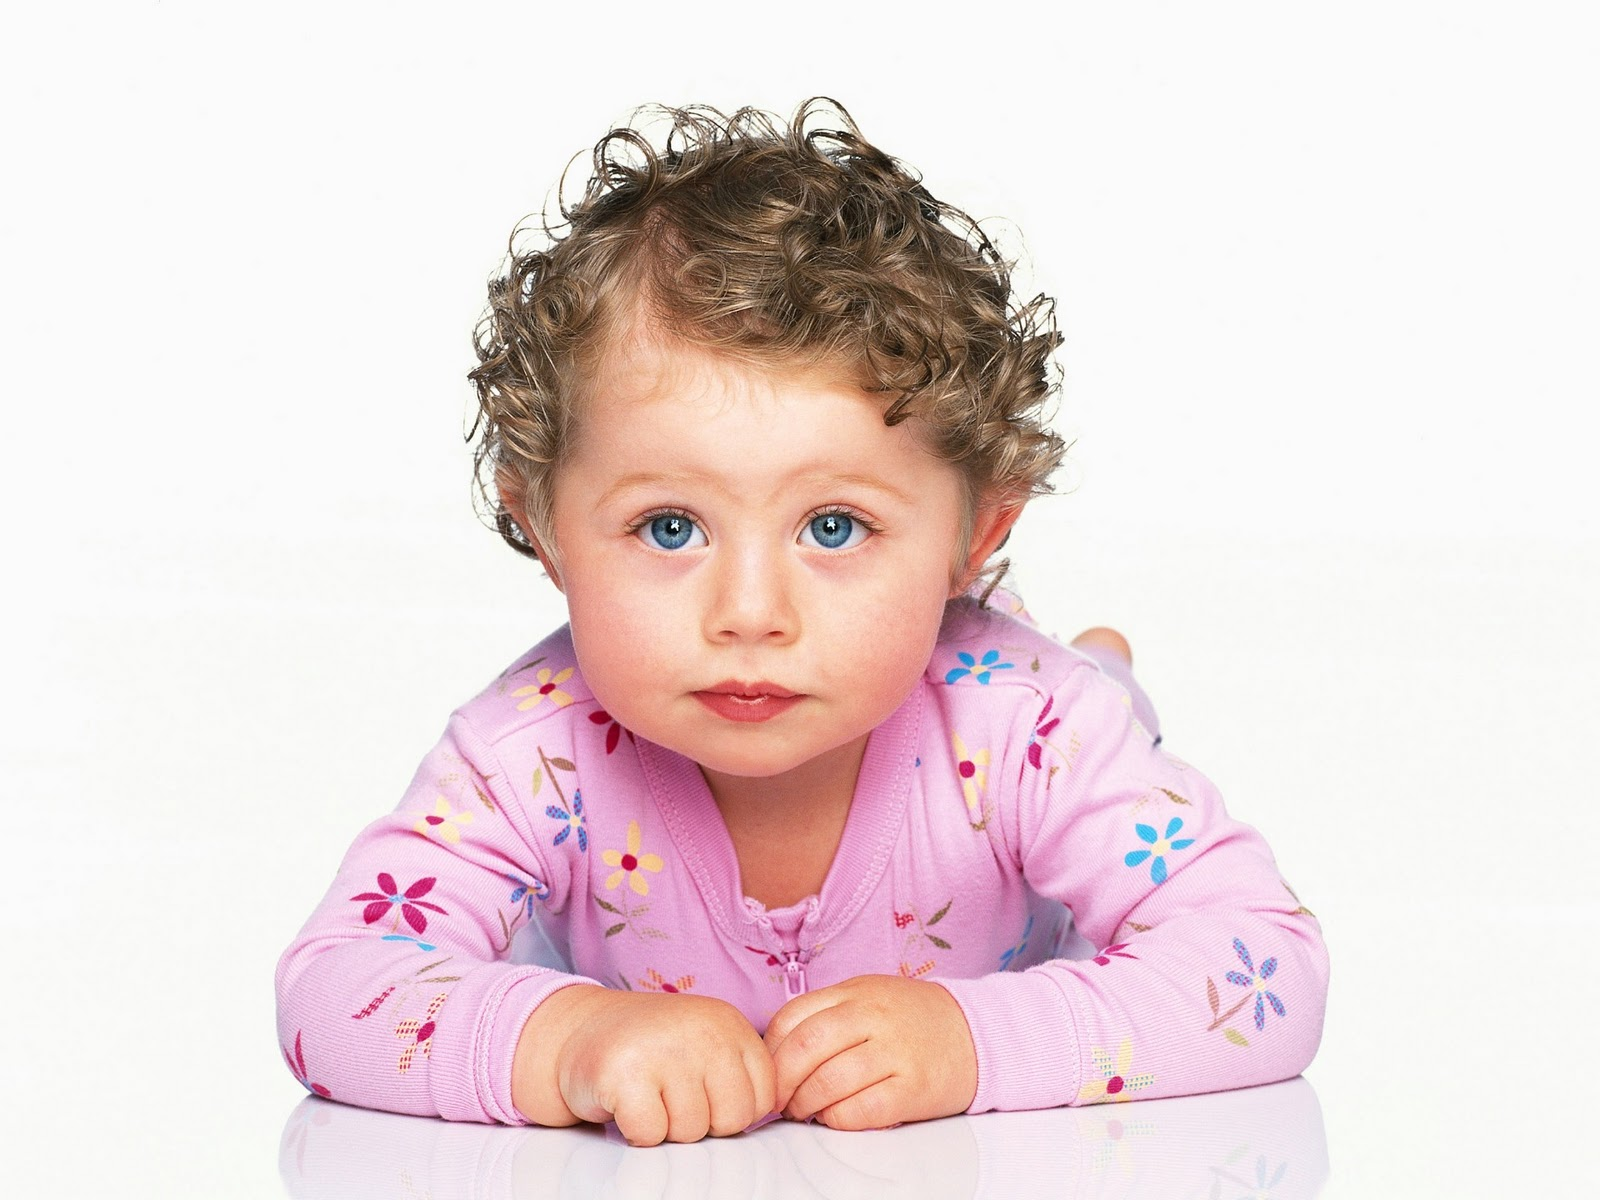 Cute baby girl child picture